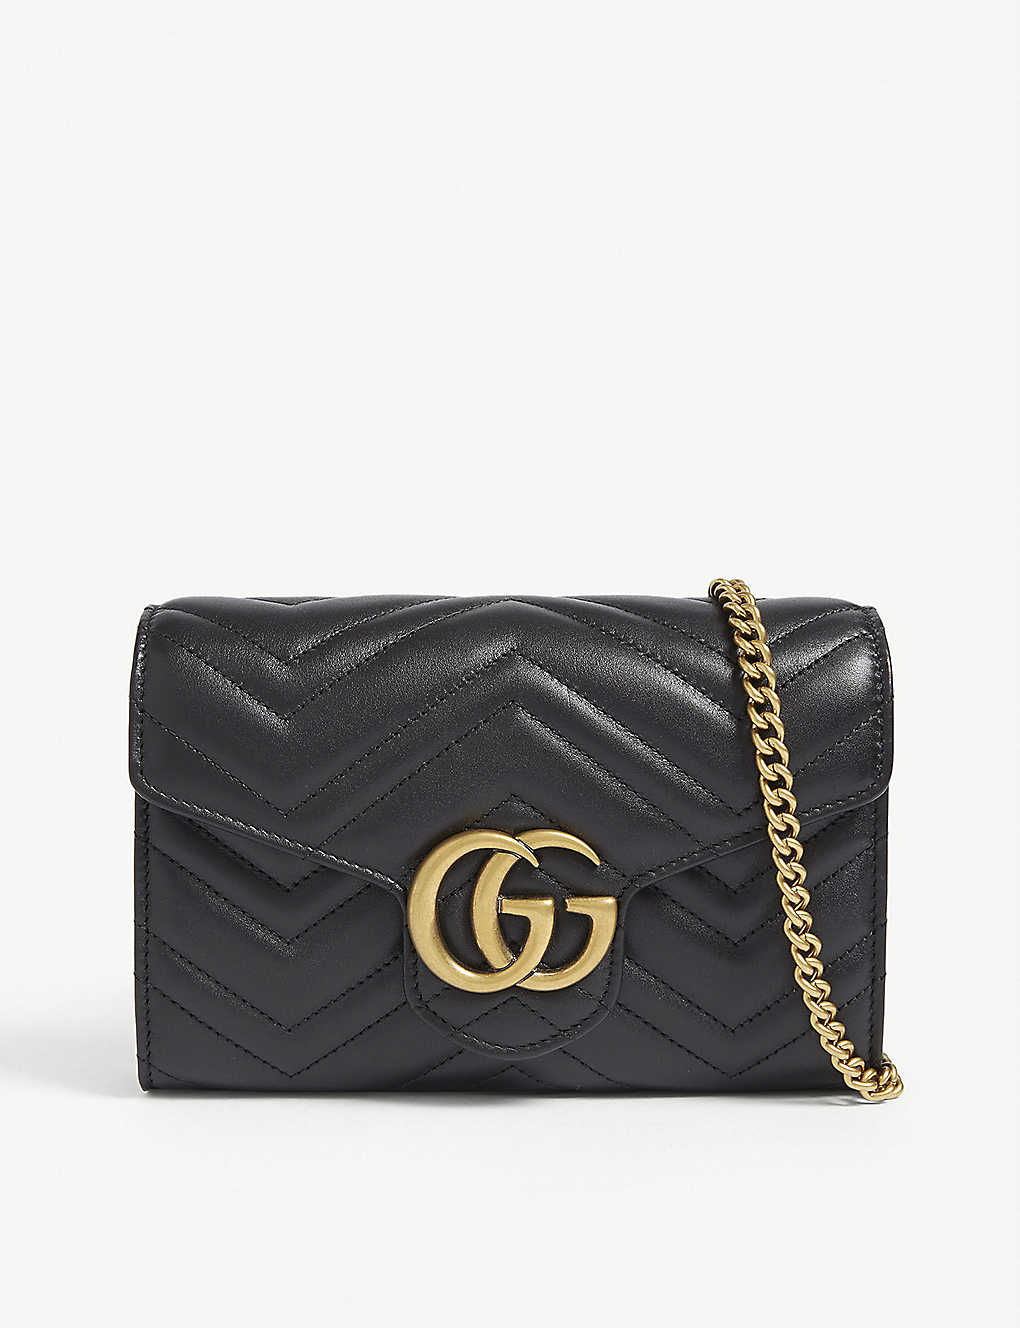 cfdd6b1a2 GUCCI - GG Marmont leather wallet on chain | Selfridges.com